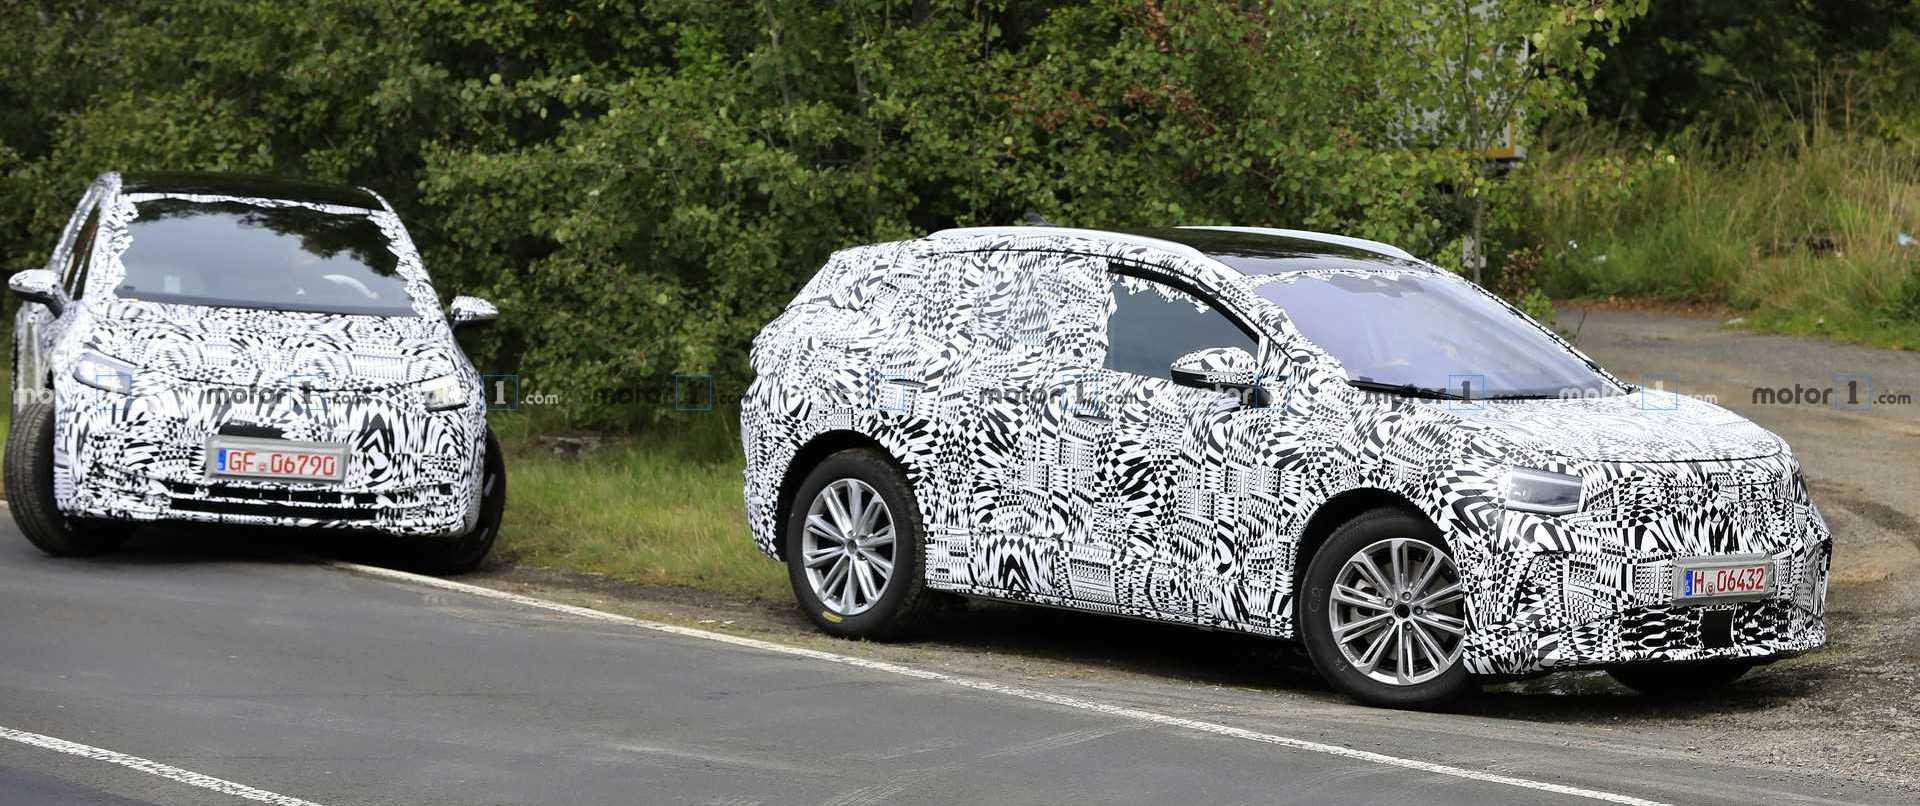 VW ID.3 And I.D. Crozz Spied Showing Minor Development Progress